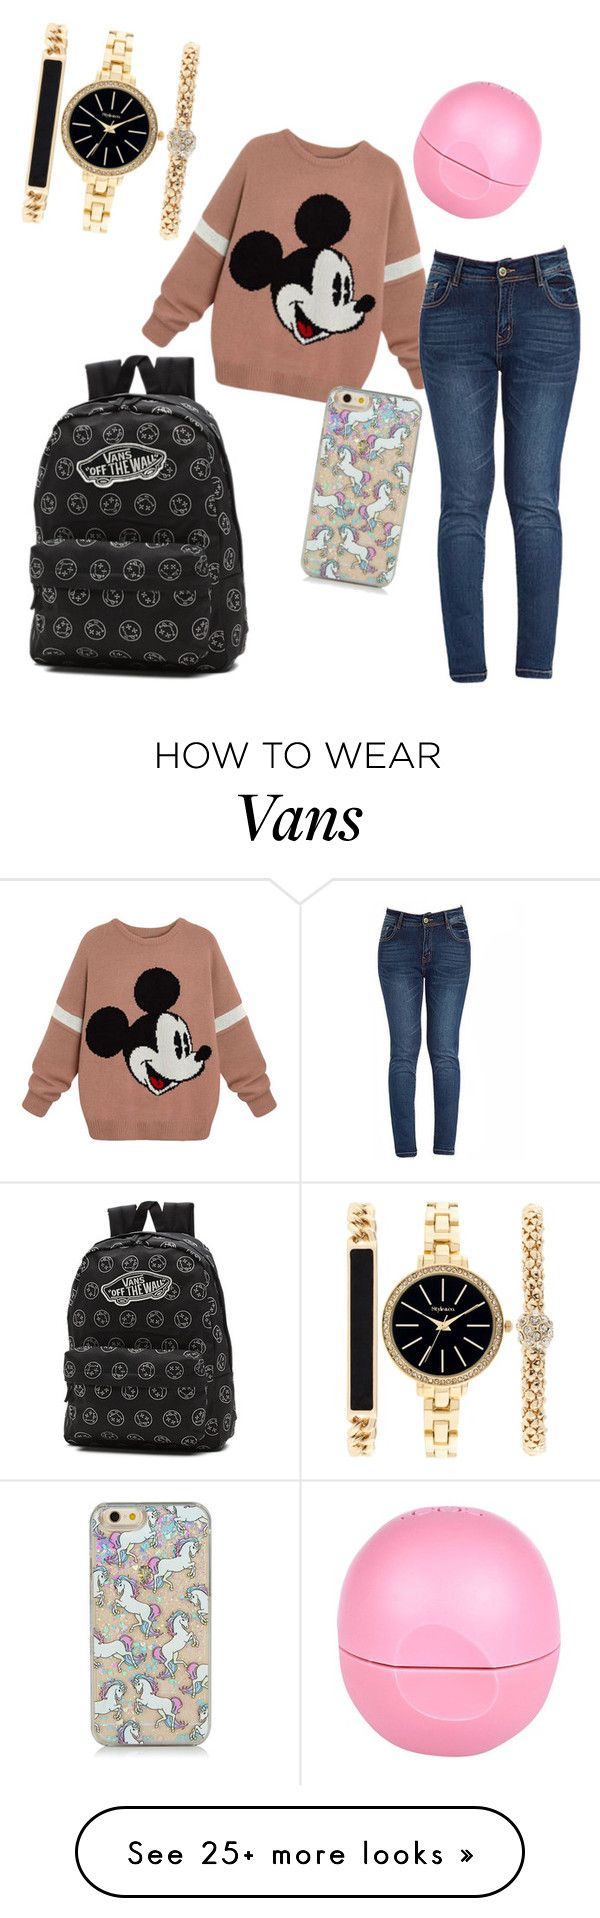 """Casual school outfit xx"" by grungexgirlx on Polyvore featuring Style & Co., River Island and Vans"